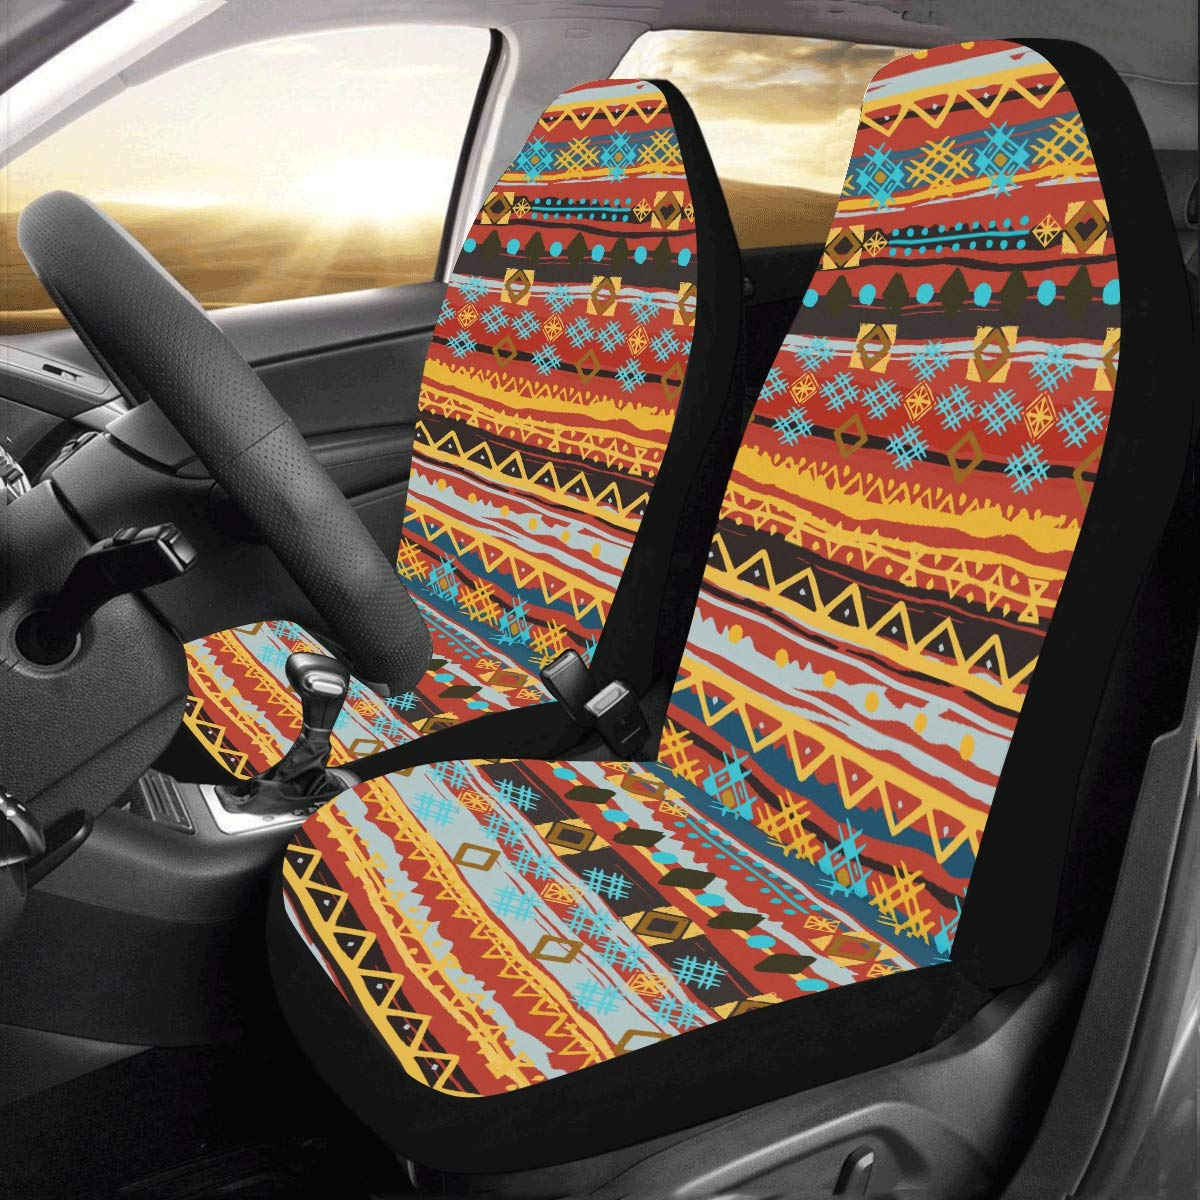 FOR U DESIGNS Car Seat Covers African Ethnic Style Design Car Seat Protector Dectoration Non-Slip Mat Unique Flat Cloth Car Seat Cover 2pc